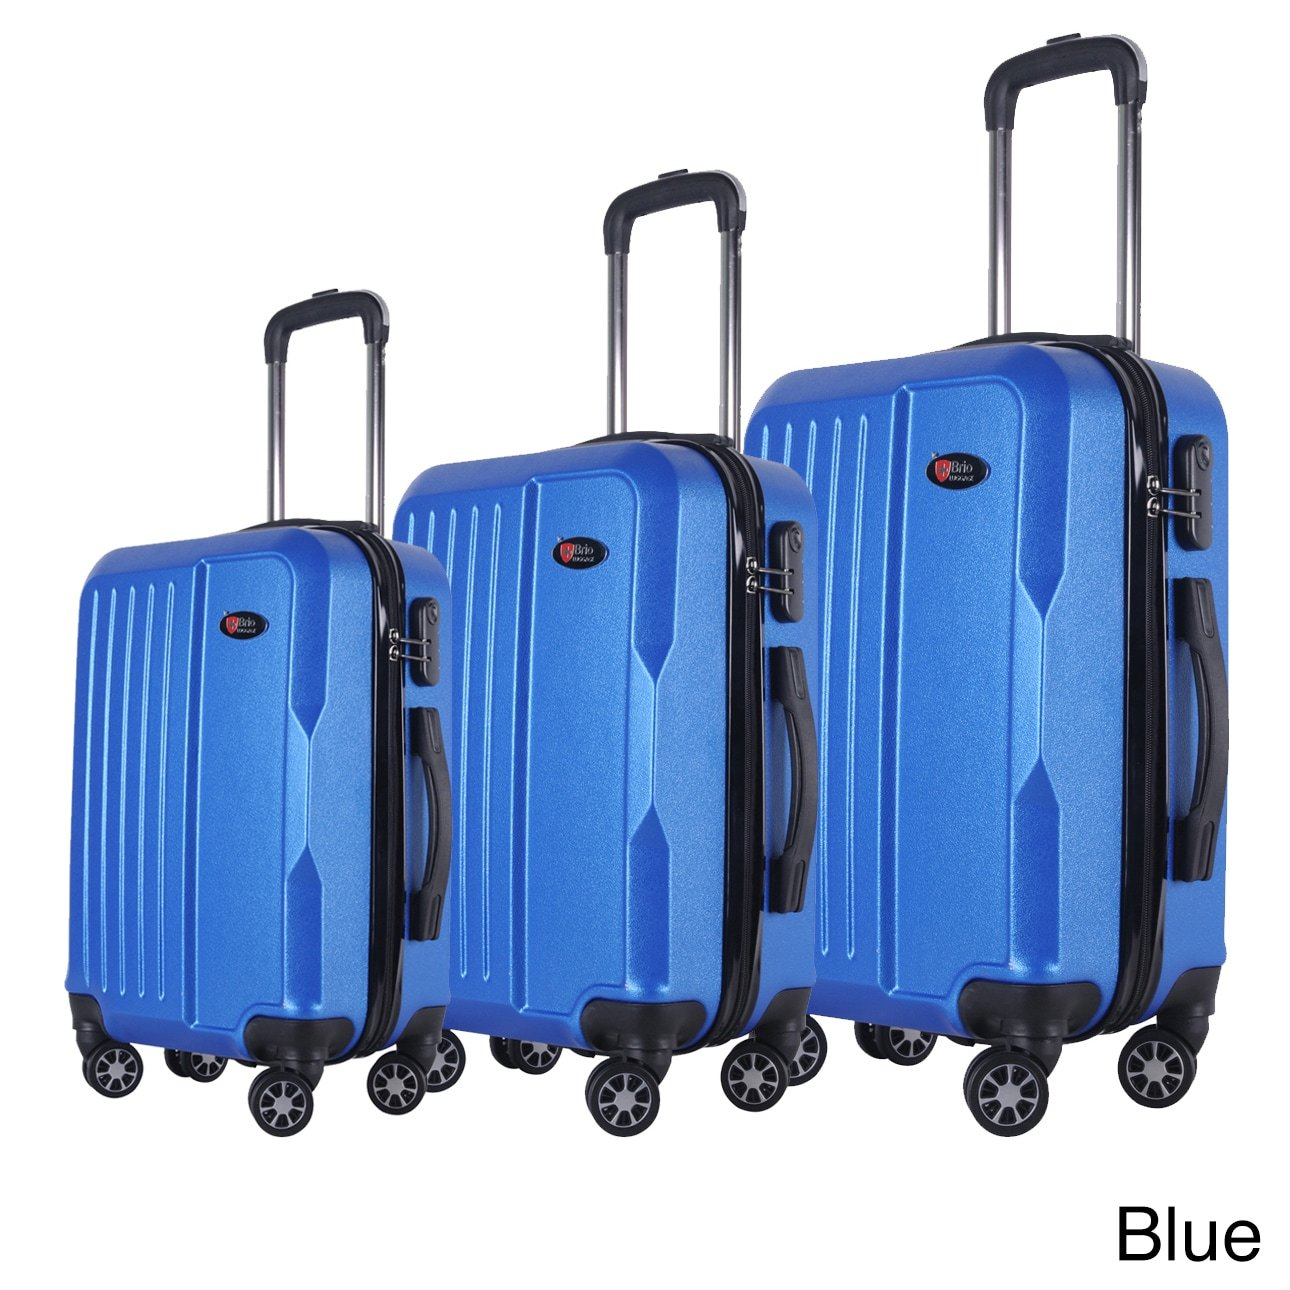 BRIO Luggage 3-piece Solid-colored ABS Hardside Spinner Luggage Set Blue Spinner, Expandable, Rolling